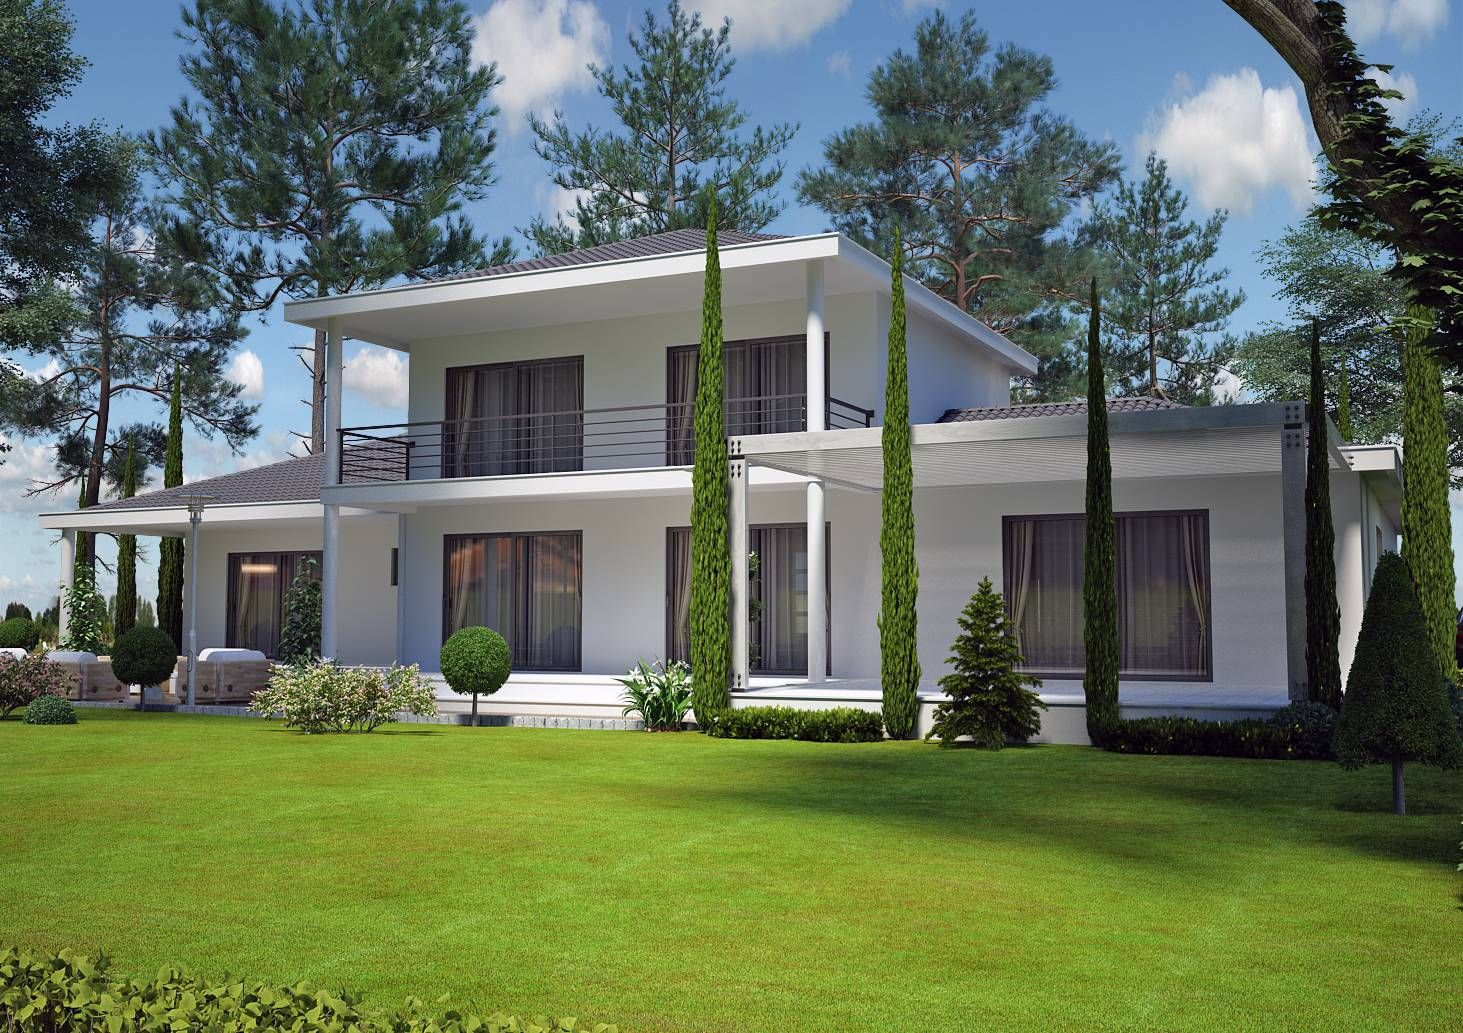 Villa contemporaine 150 m2 etage mod le pinede salon for Modele salon maison